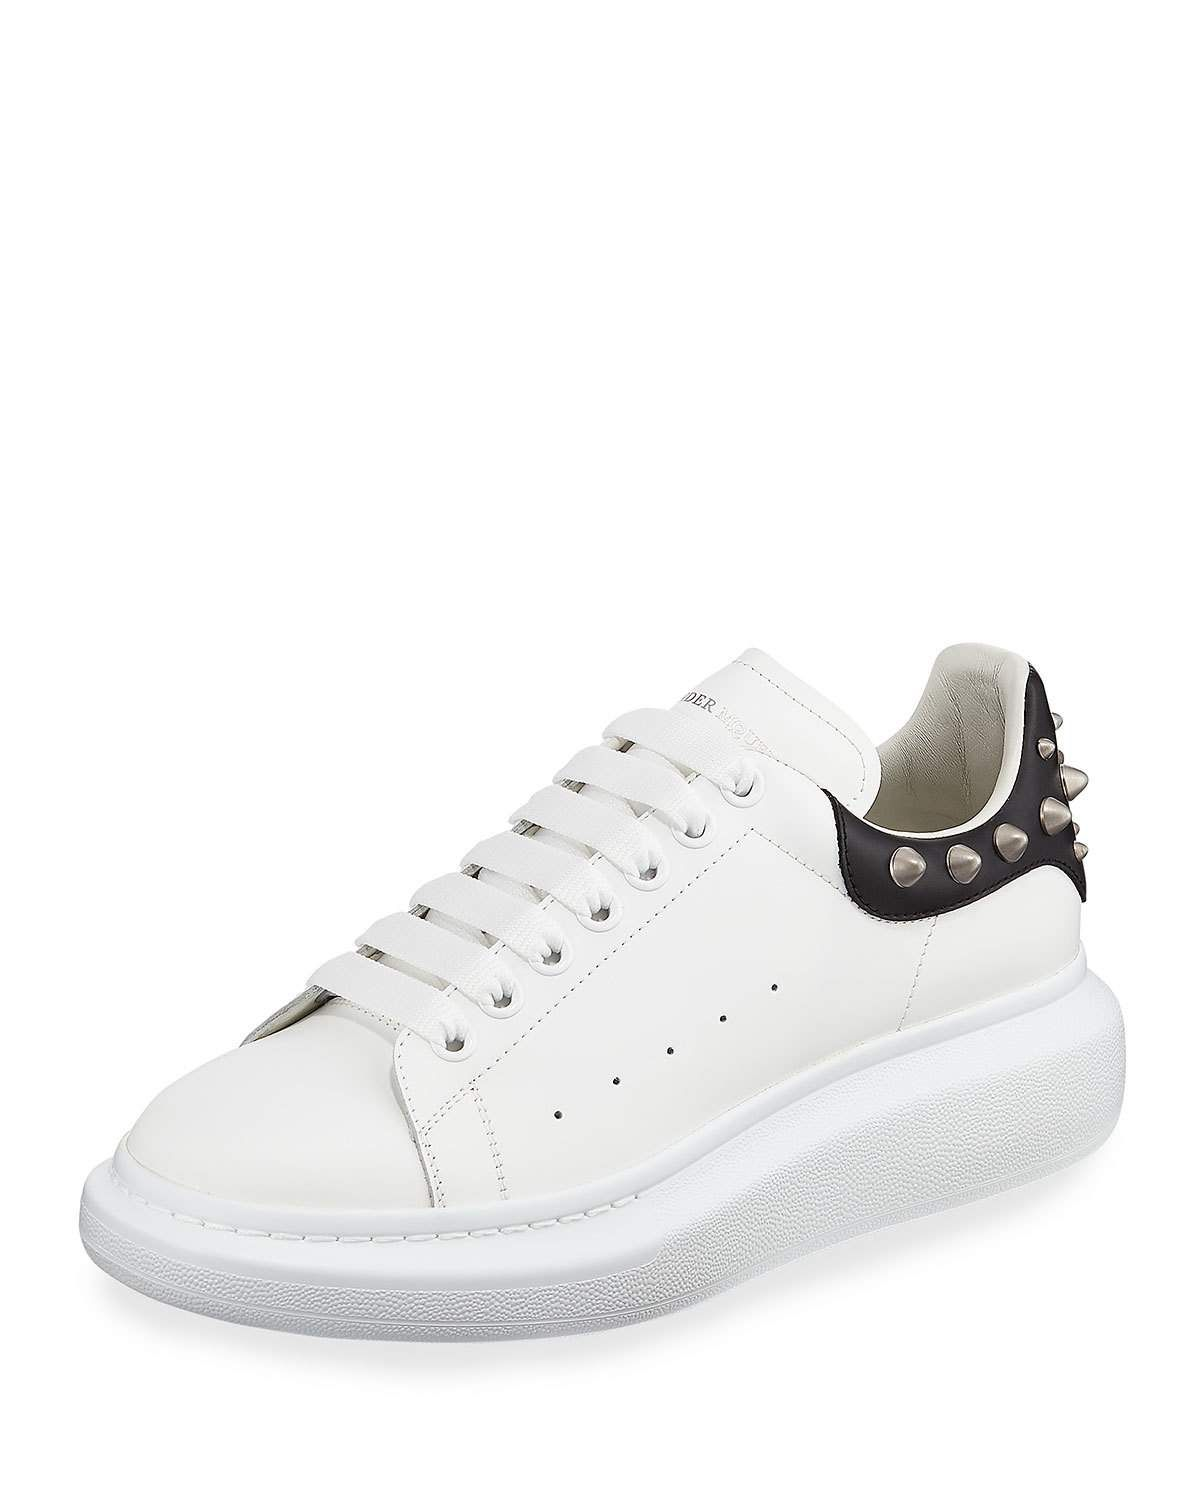 Men's Larry Leather Lace up Platform Sneakers With Spiked